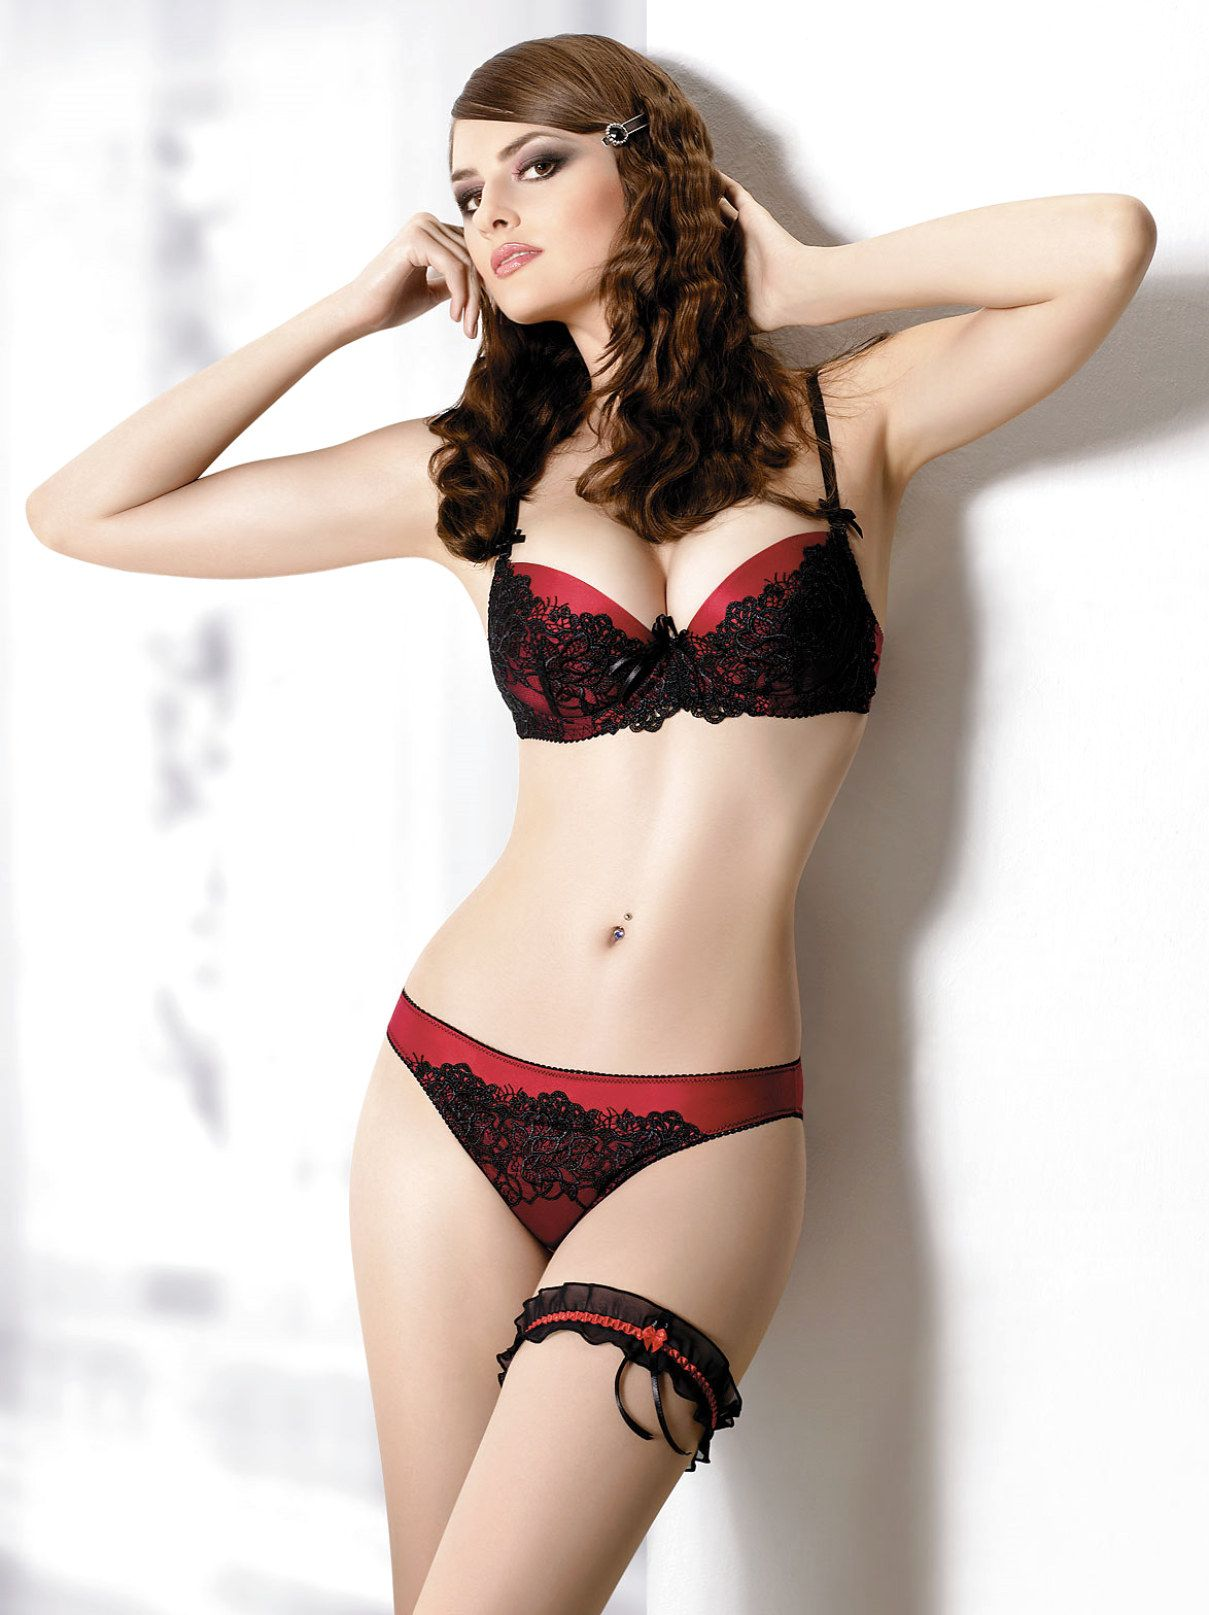 6b25dd4ff76c My preferred lingerie | My preferred lingerie | Lingerie collection ...